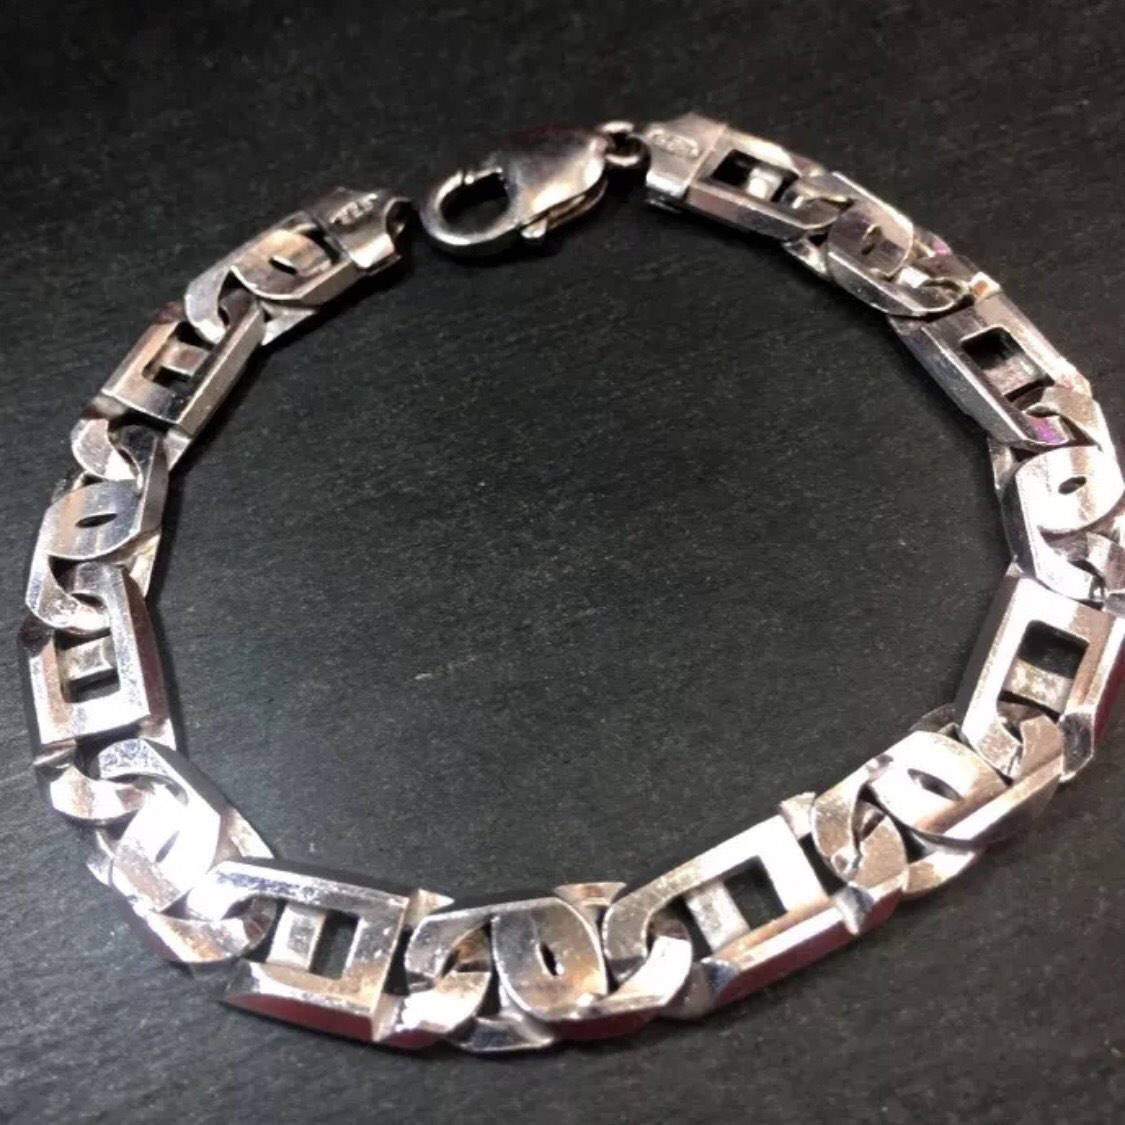 New Large Solid Silver Italian Marina Tiger-eye Link Chain Bracelet